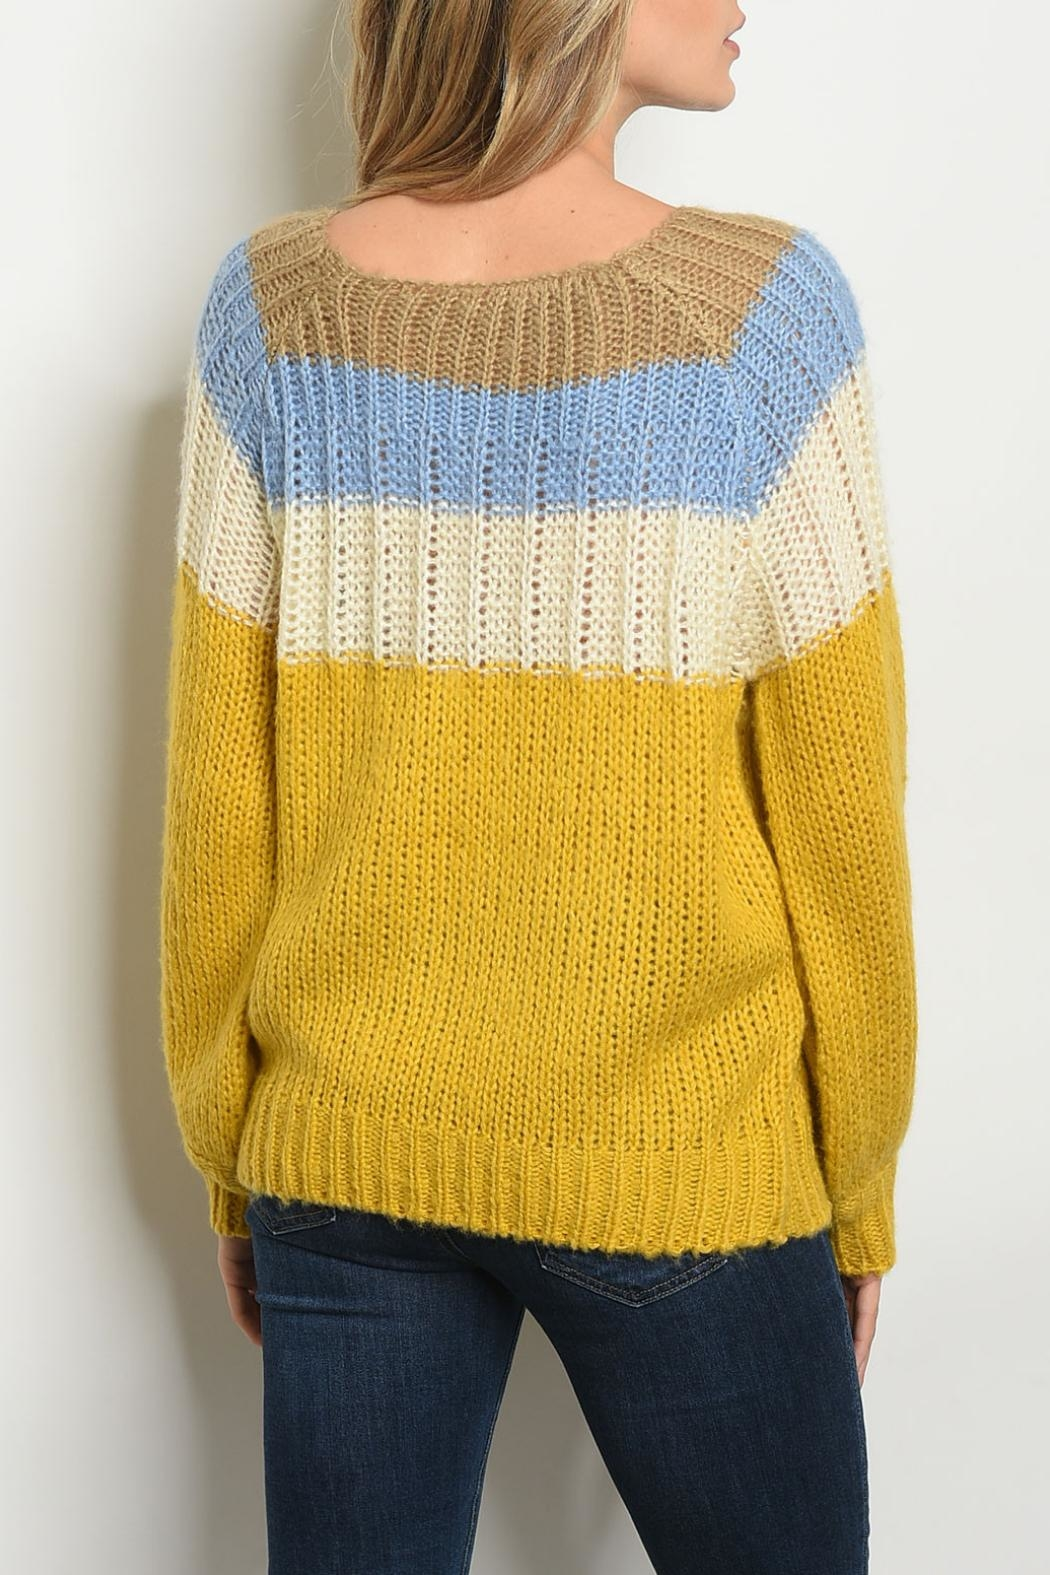 O & O Blue Mustard Sweater - Front Full Image